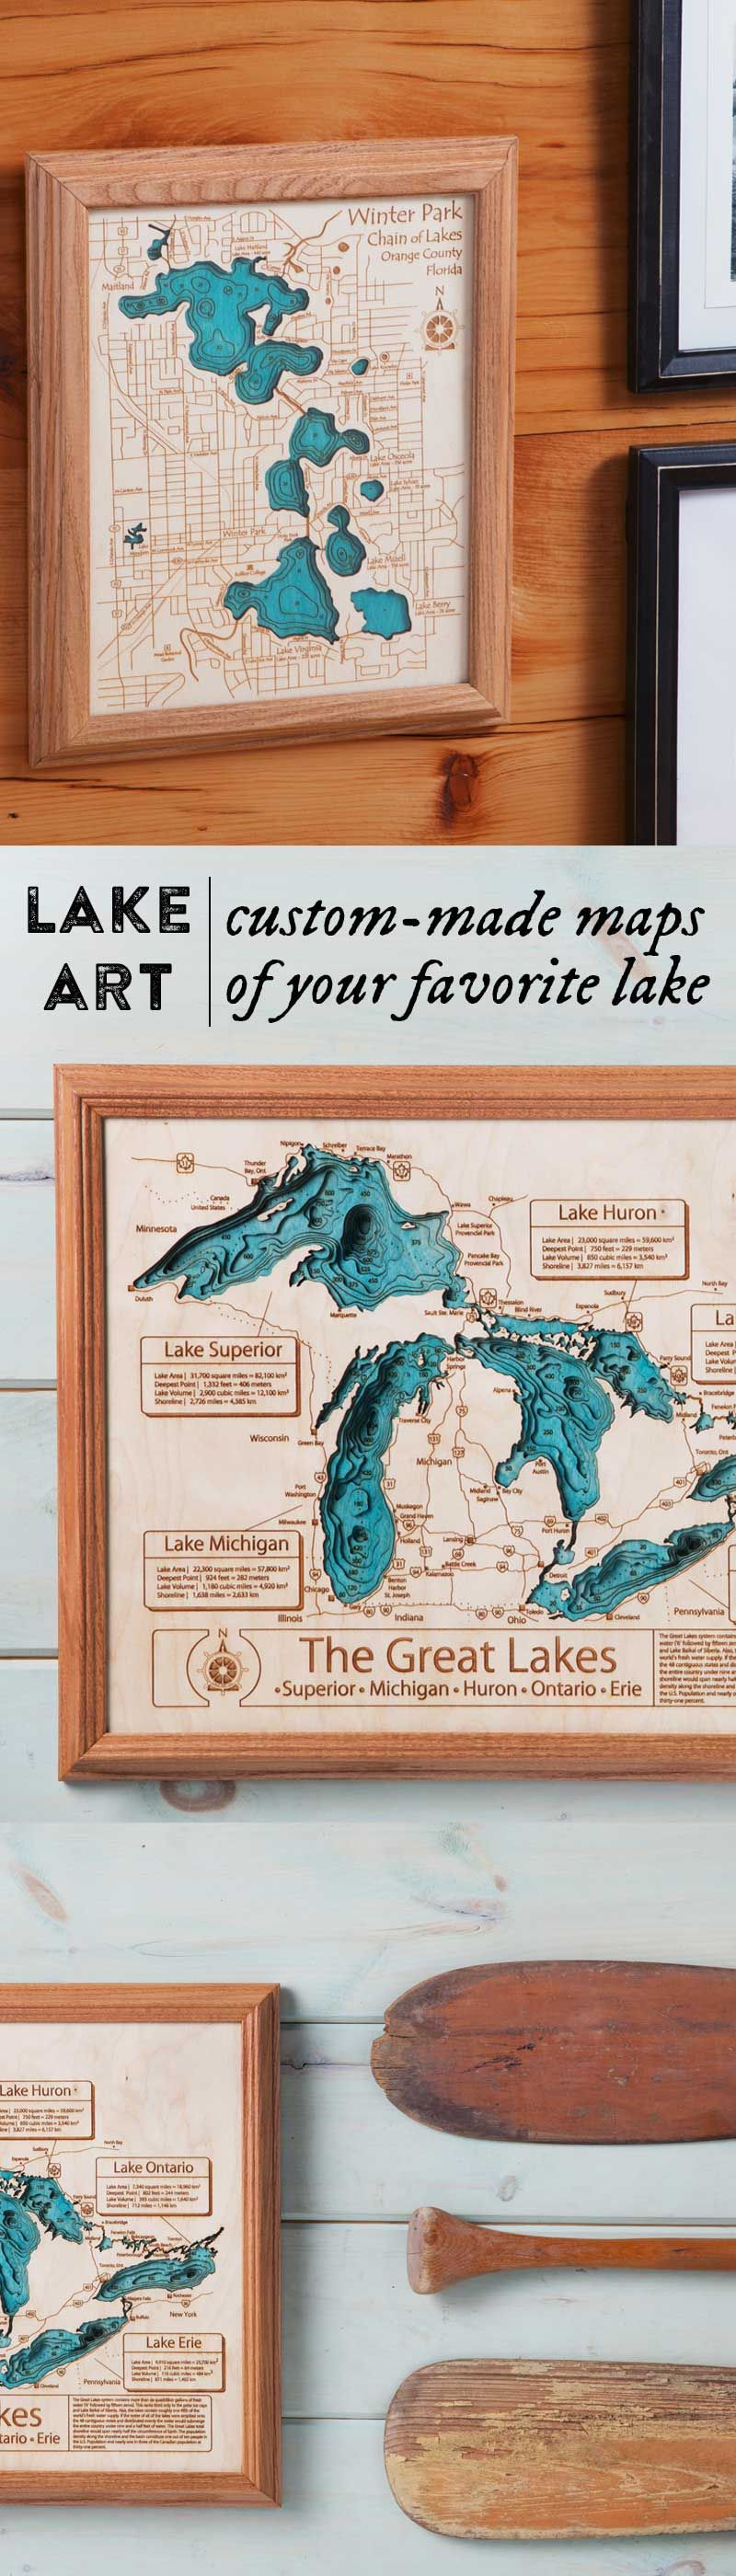 Lake Art The Grommet These maps